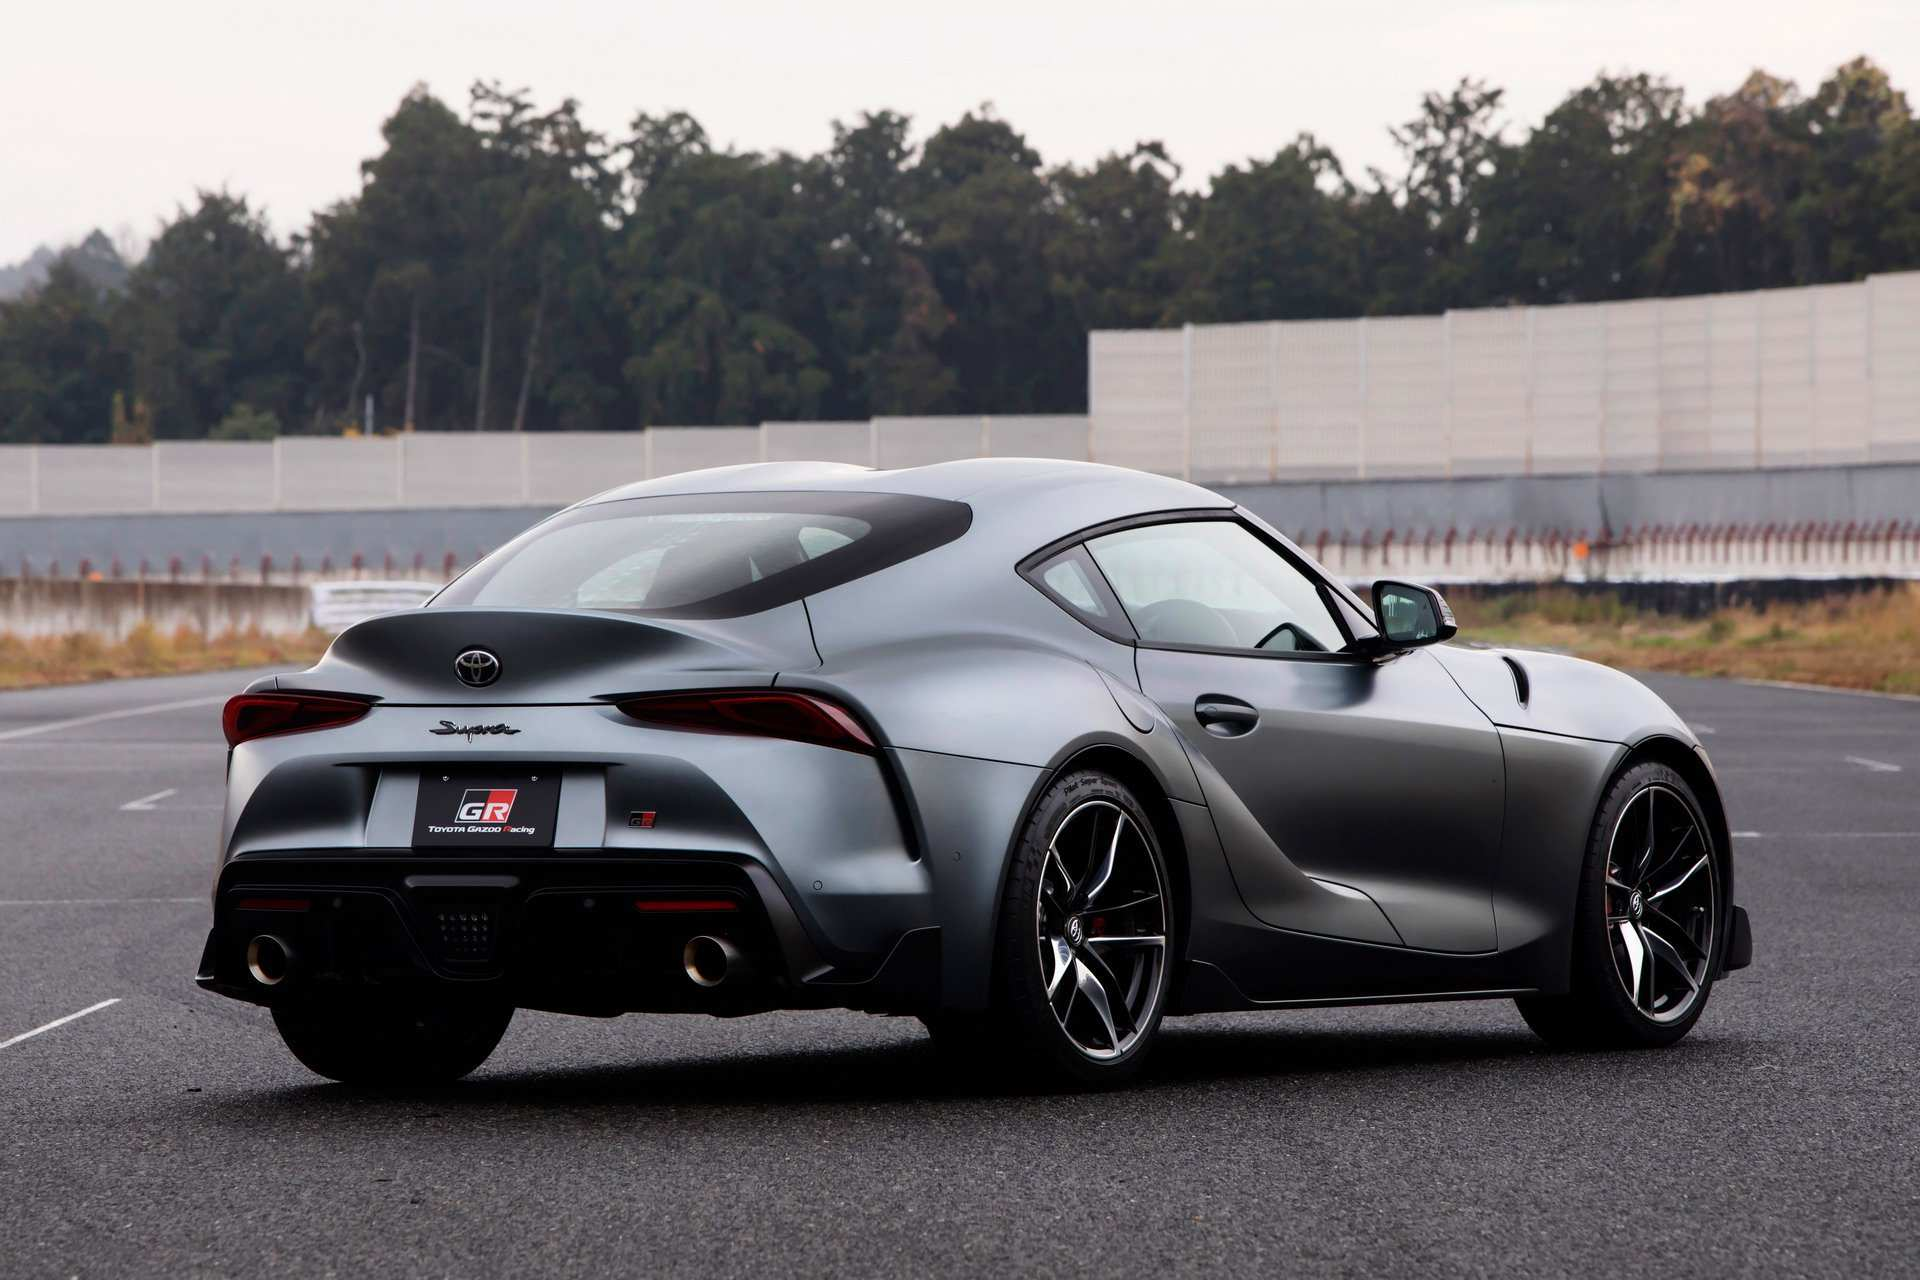 23 Gallery of Toyota Gr Supra 2020 Picture with Toyota Gr Supra 2020